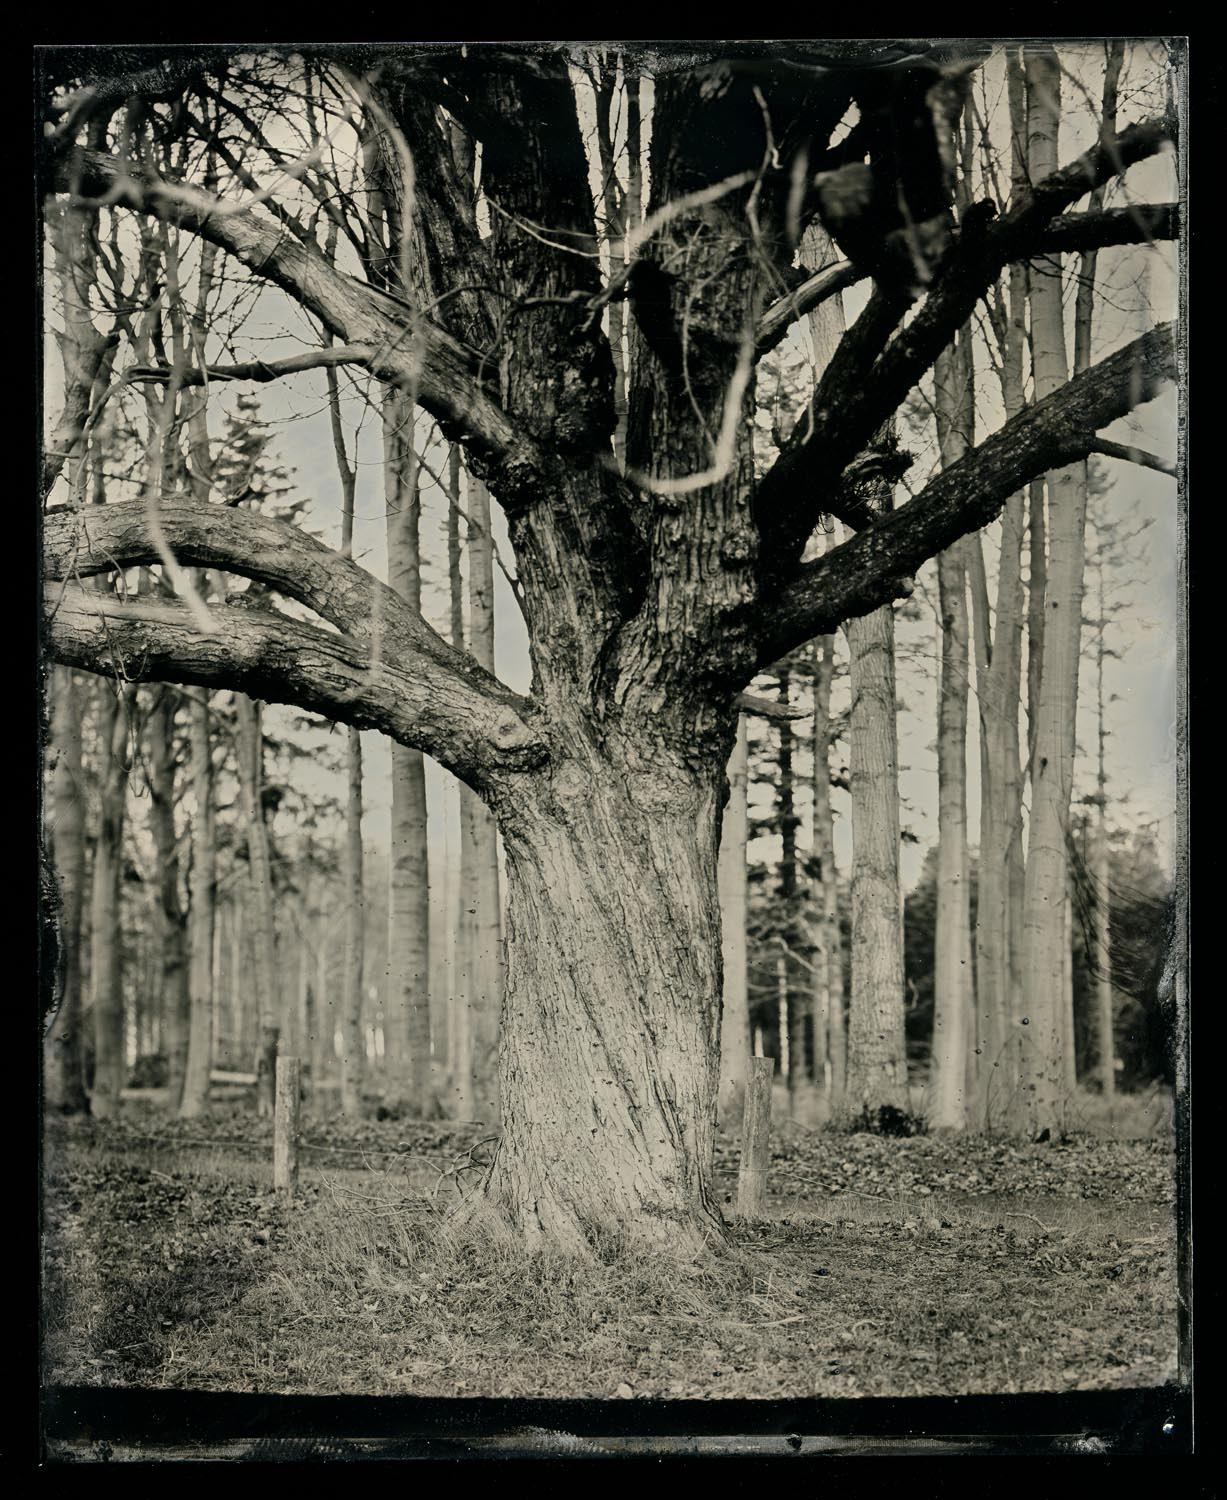 wetplate-scan160.jpg